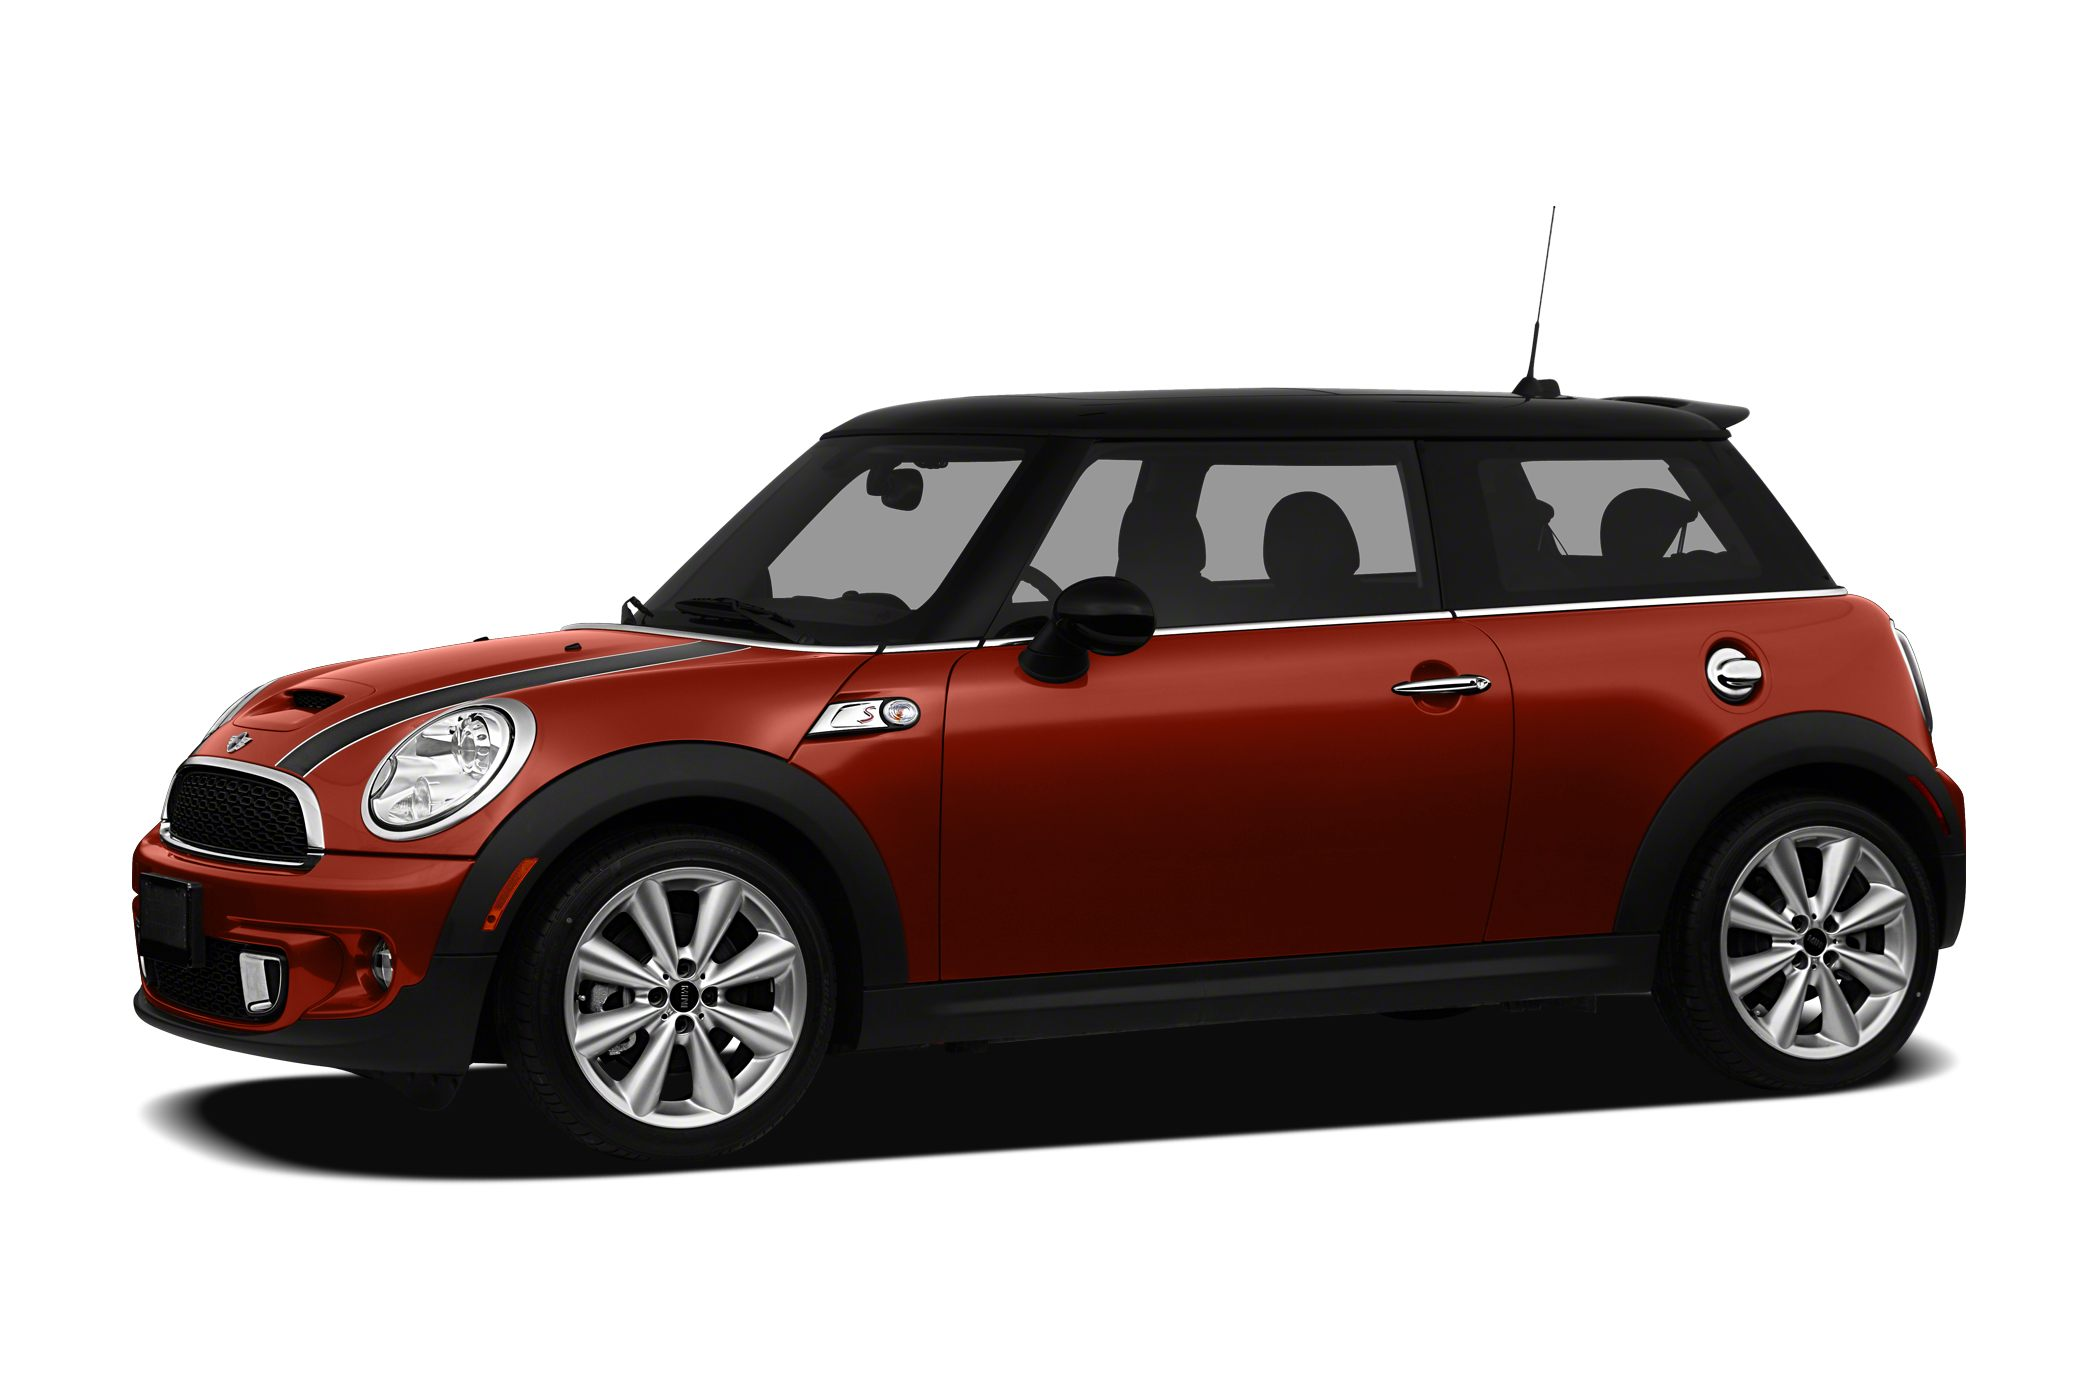 2011 MINI Cooper S Base Hatchback for sale in Sunnyvale for $17,895 with 42,693 miles